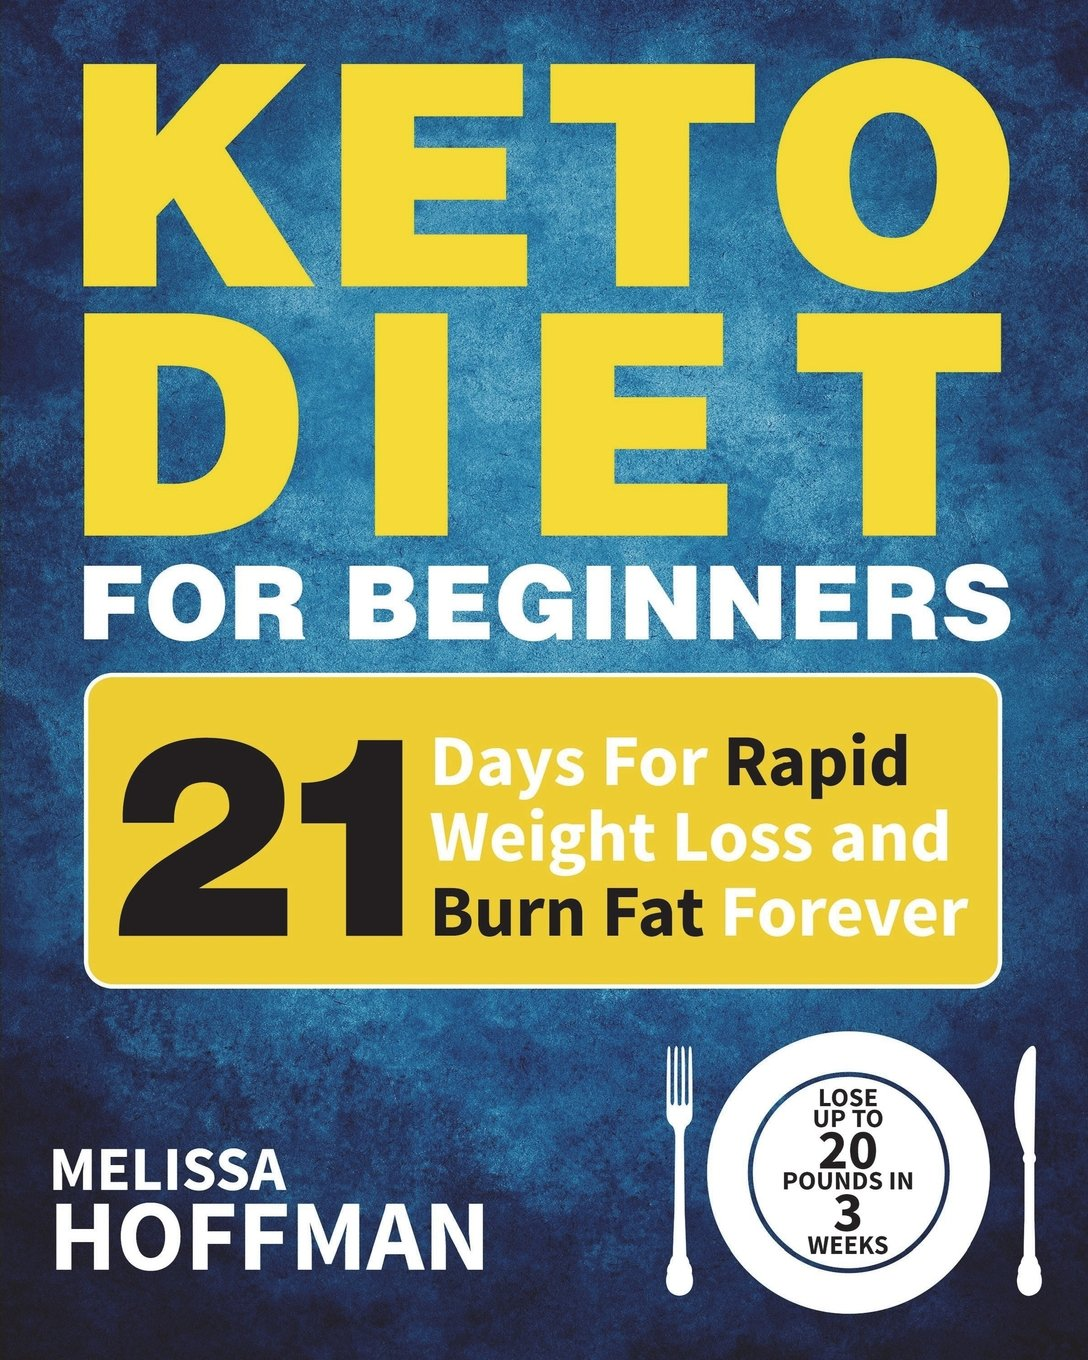 Read Online Keto Diet For Beginners: 21 Days For Rapid Weight Loss And Burn Fat Forever - Lose Up to 20 Pounds In 3 Weeks (Ketogenic Diet for Beginners) pdf